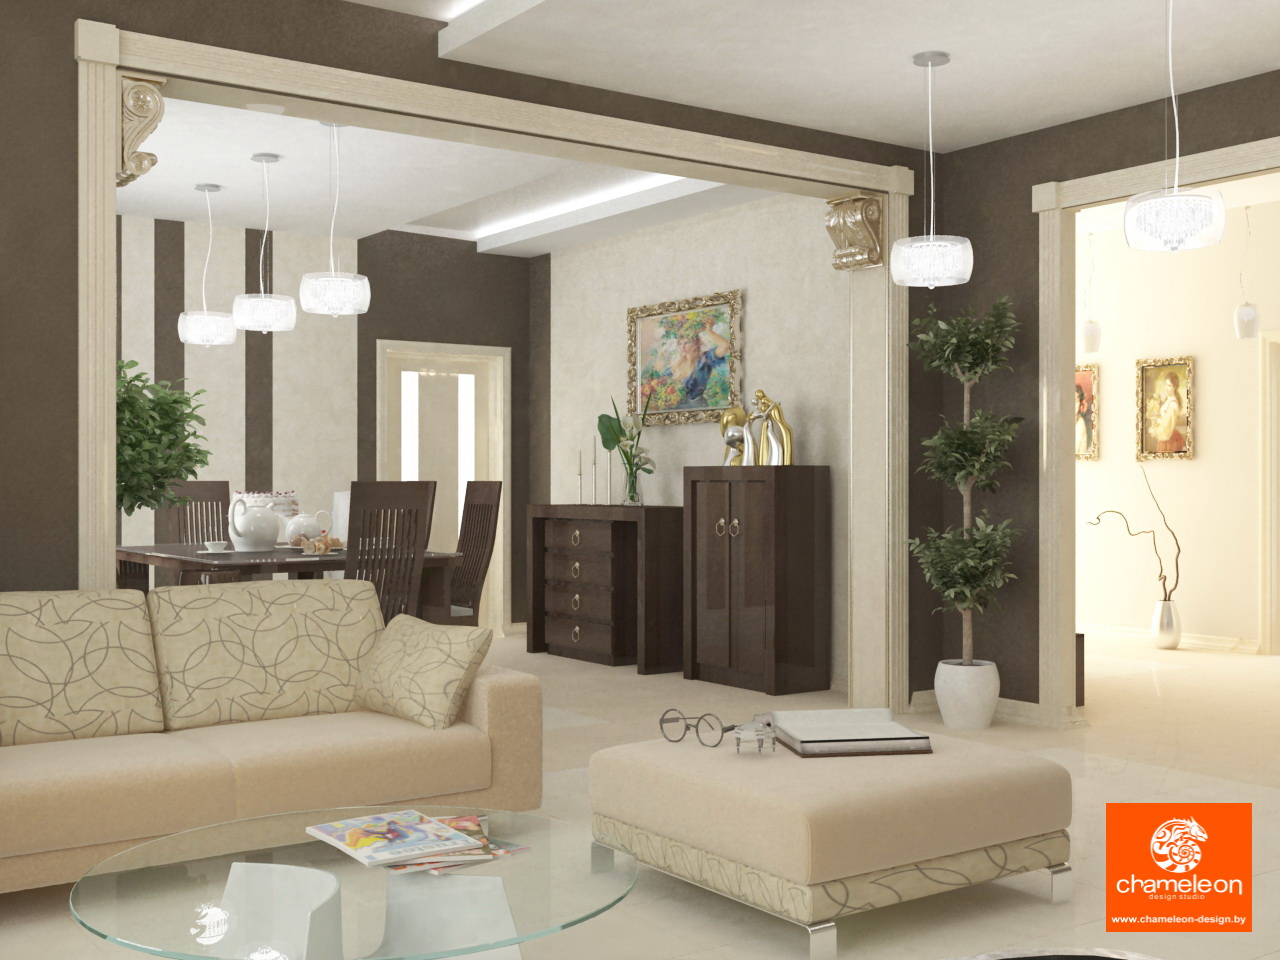 Interior designs for cars smart house ideas smart house for Smart house interior design